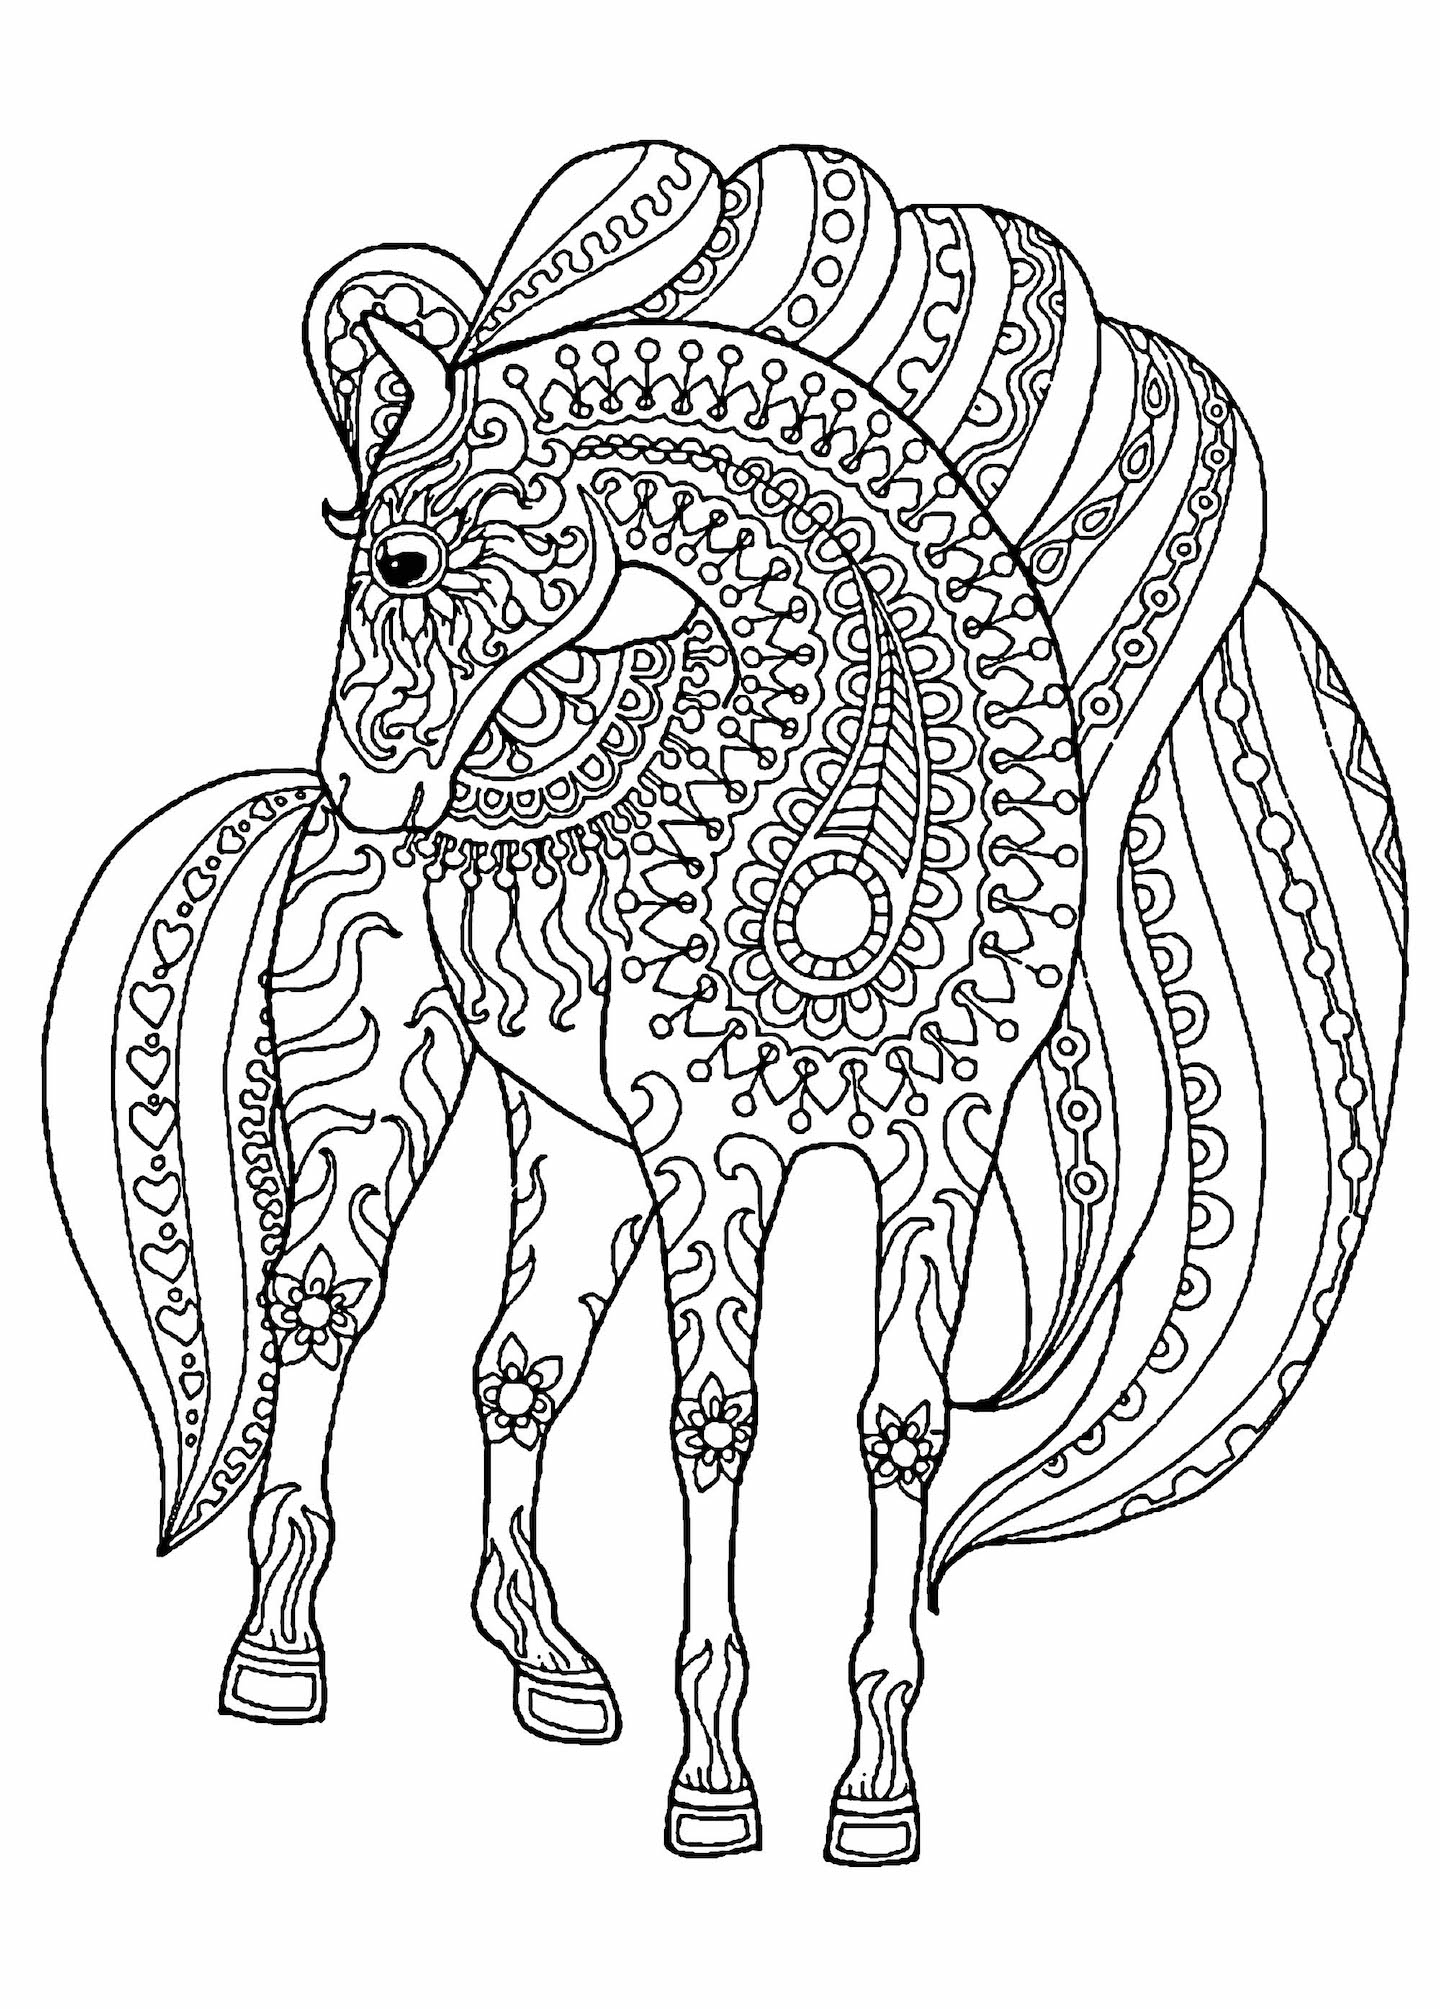 coloring pages of horses to print 30 printable horse coloring pages coloring print of horses to pages